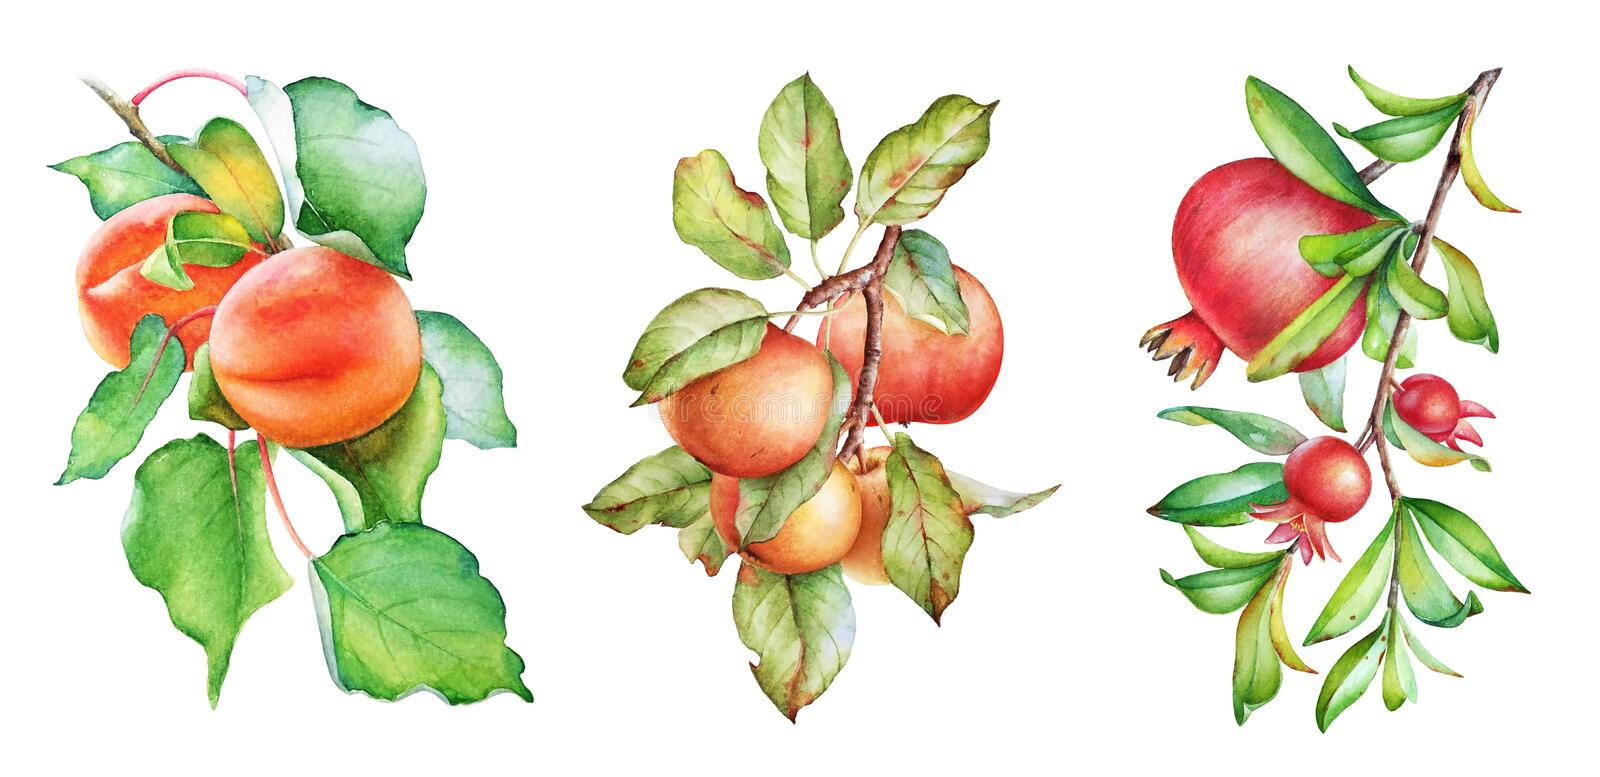 Apple, apricot and pomegranate tree branches. Watercolor illustration stock photo